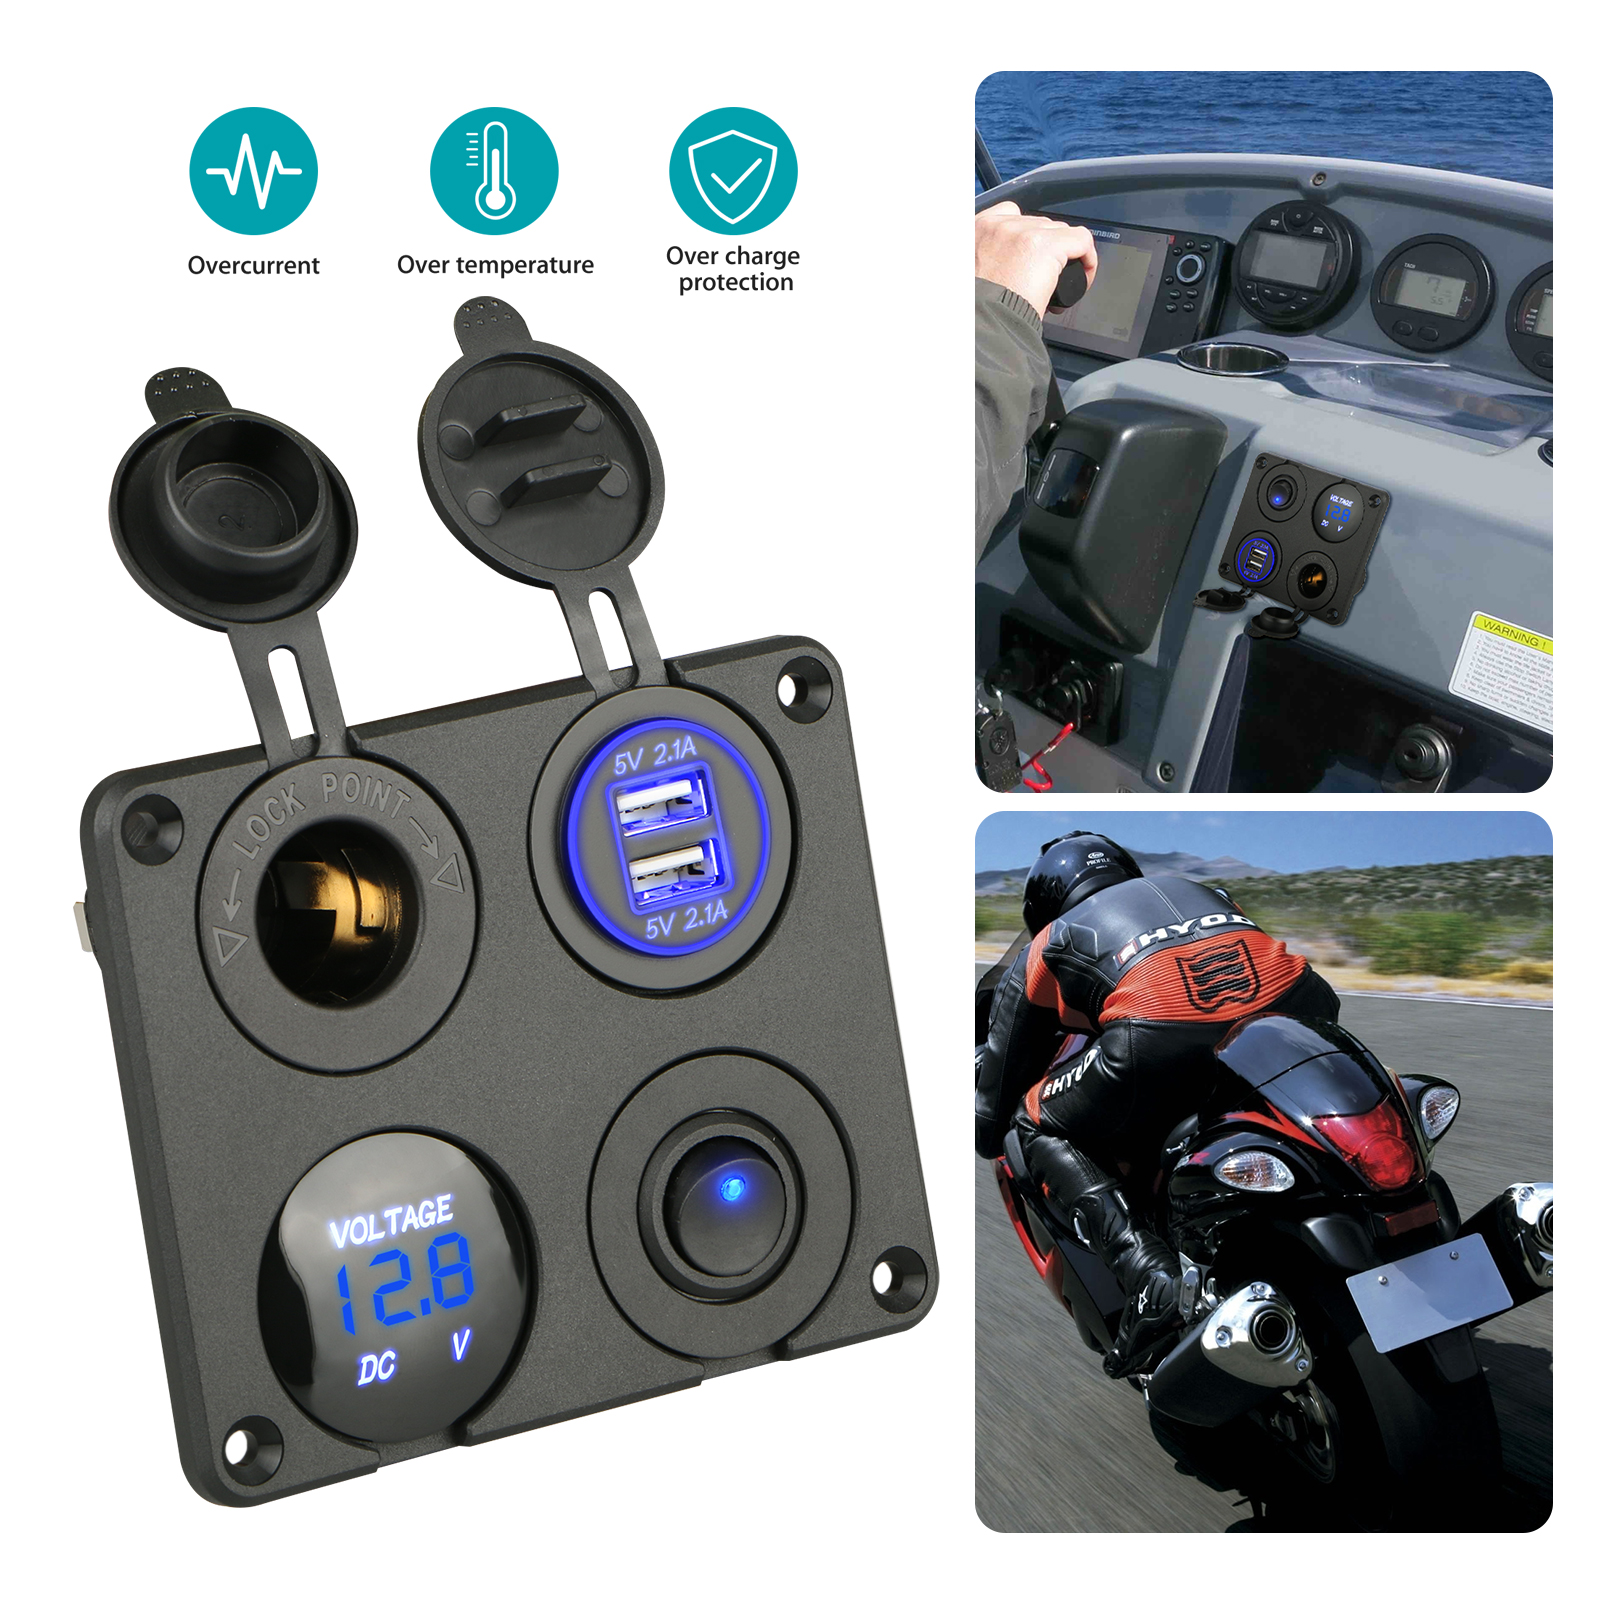 4 in 1 Dual USB Socket Charger 2.1A & 2.1A + LED Voltmeter + 12V Power Outlet+ ON-Off Toggle Switch, Multifunction Panel for Car Boat Marine RV Truck Camper Vehicles GPS Mobiles (Blue)